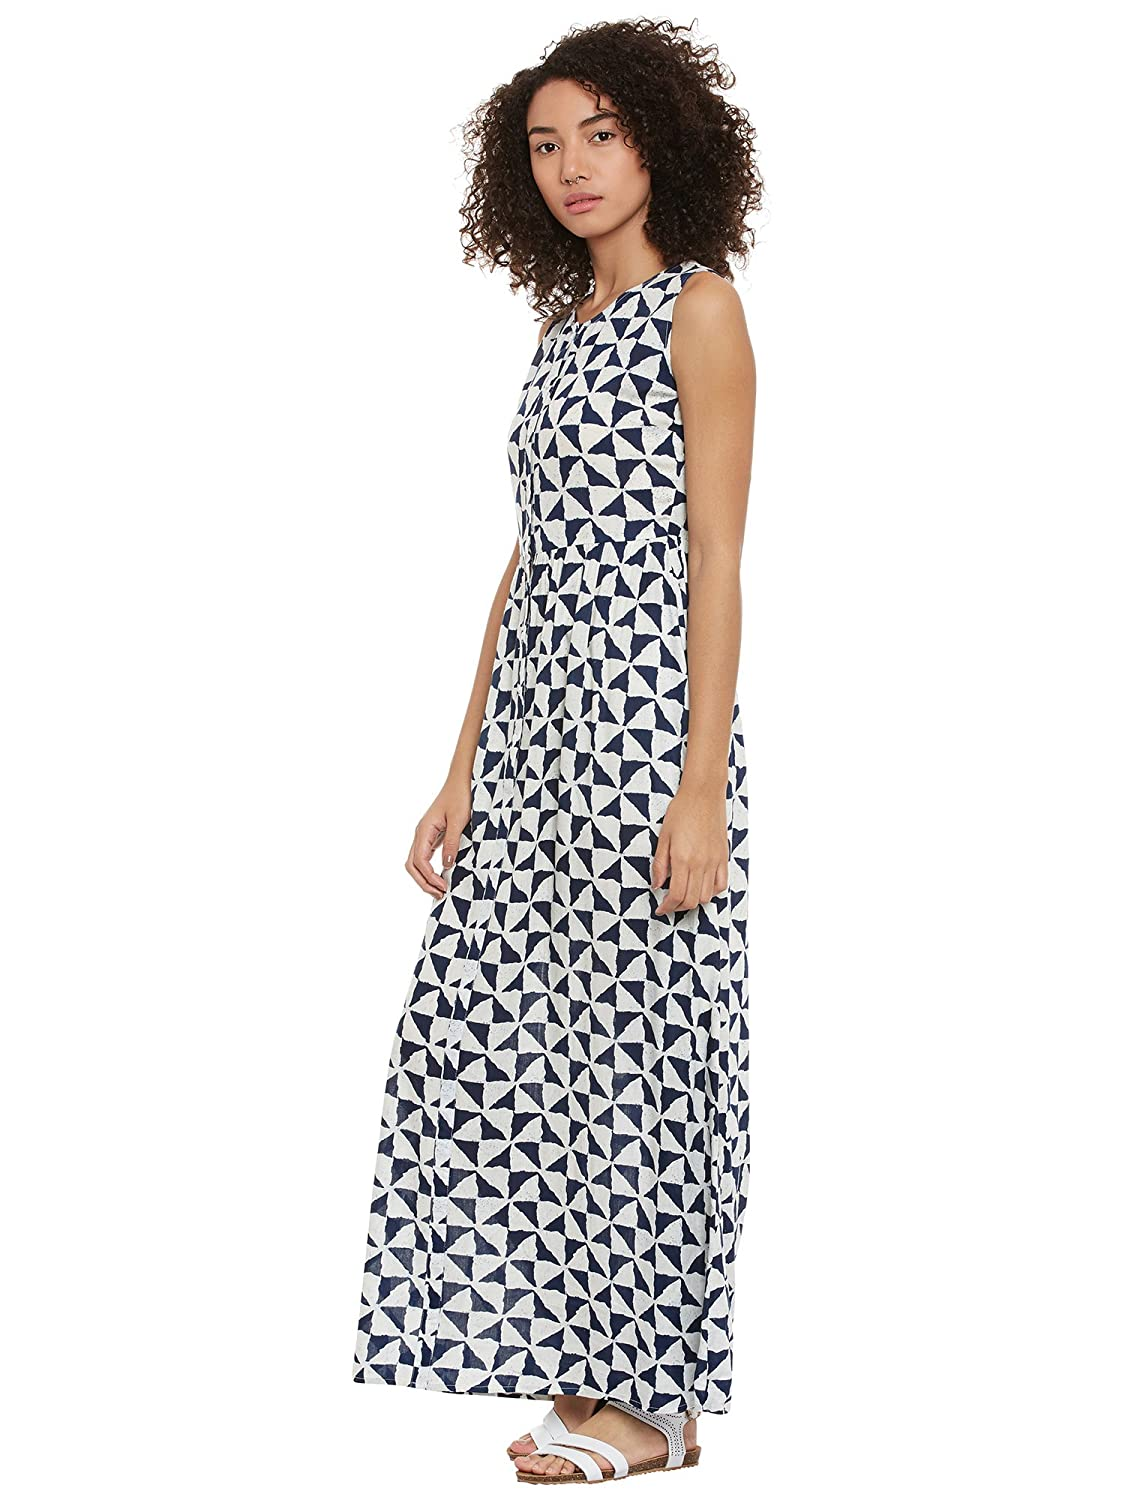 30637fb8832 Femella Fashion s White printed button down maxi Dress  Amazon.in  Clothing    Accessories